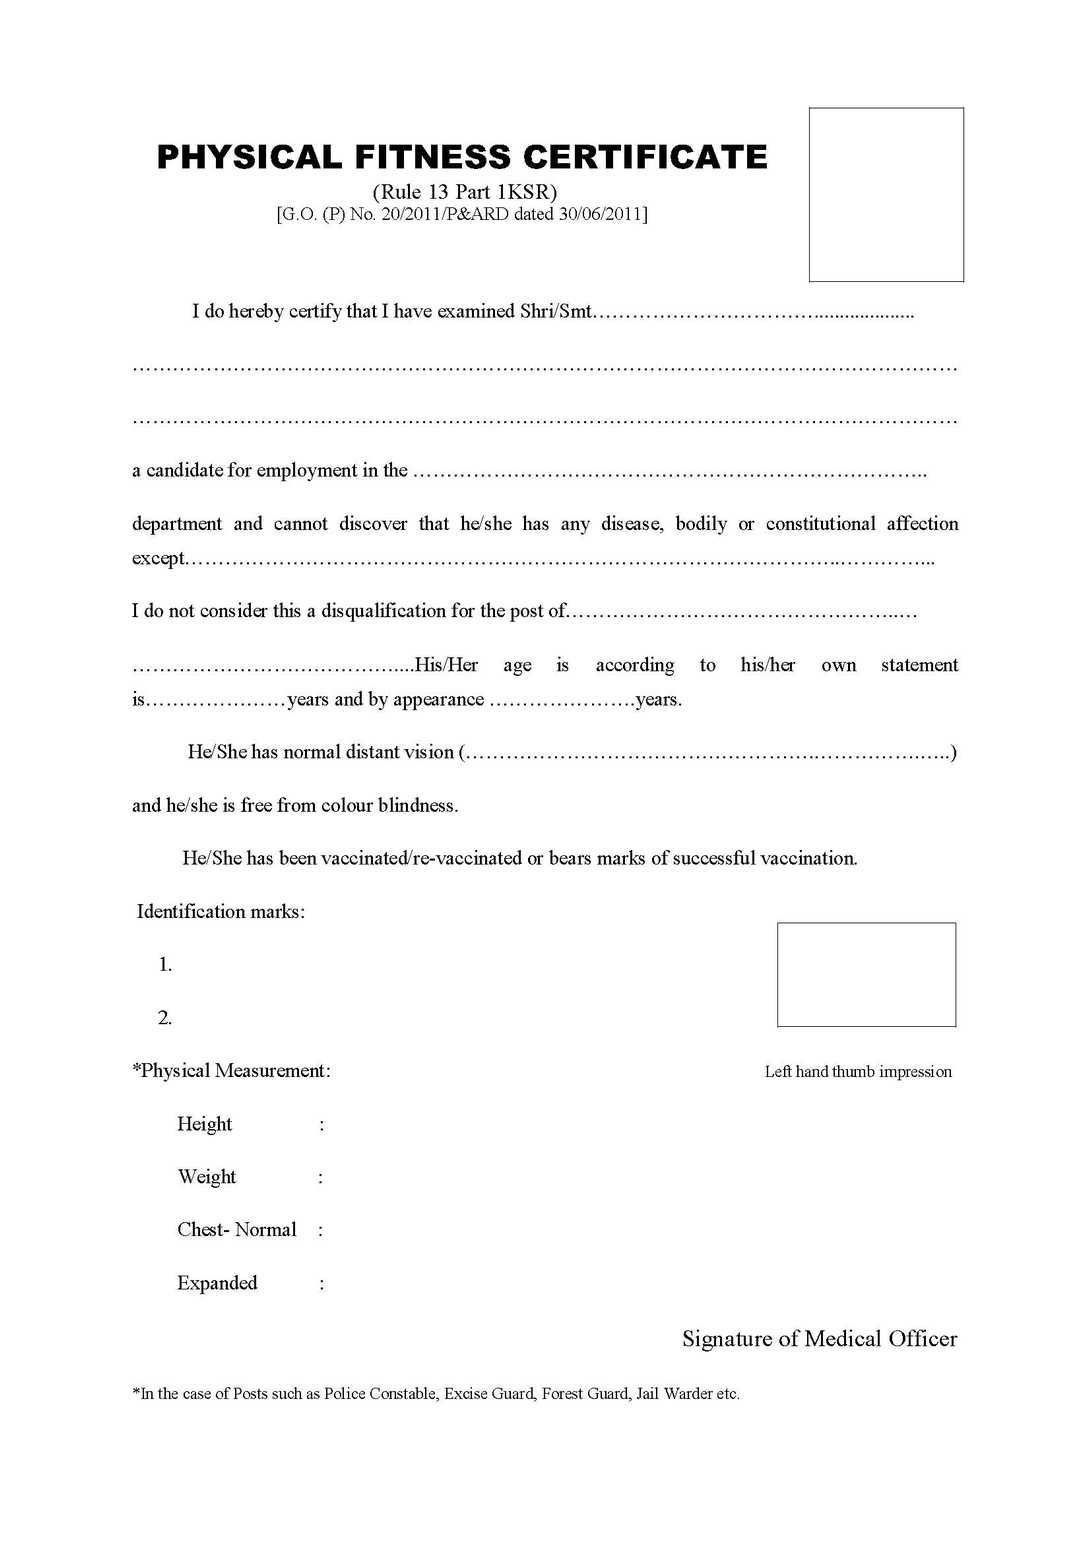 medical certificate awesome achievement fitness form template printable examination pdf flaminke